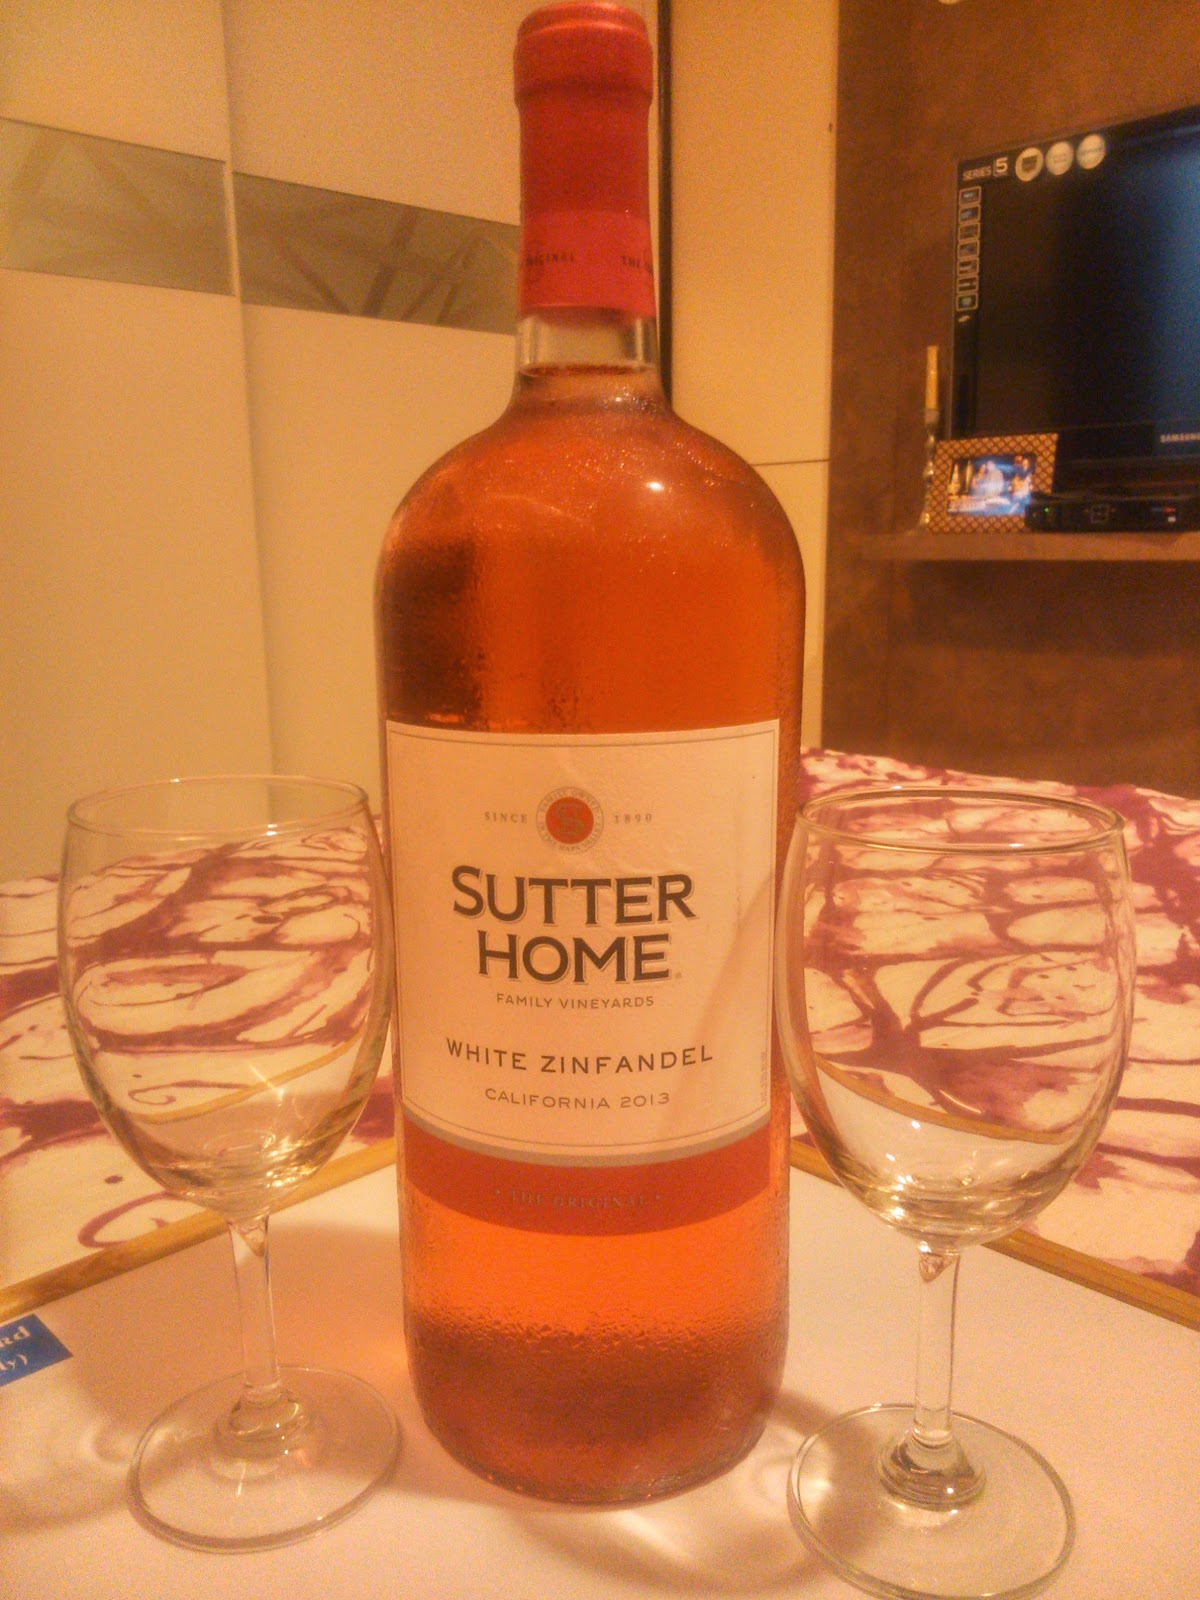 Wine Review: Sutter Home White Zinfandel California 2013